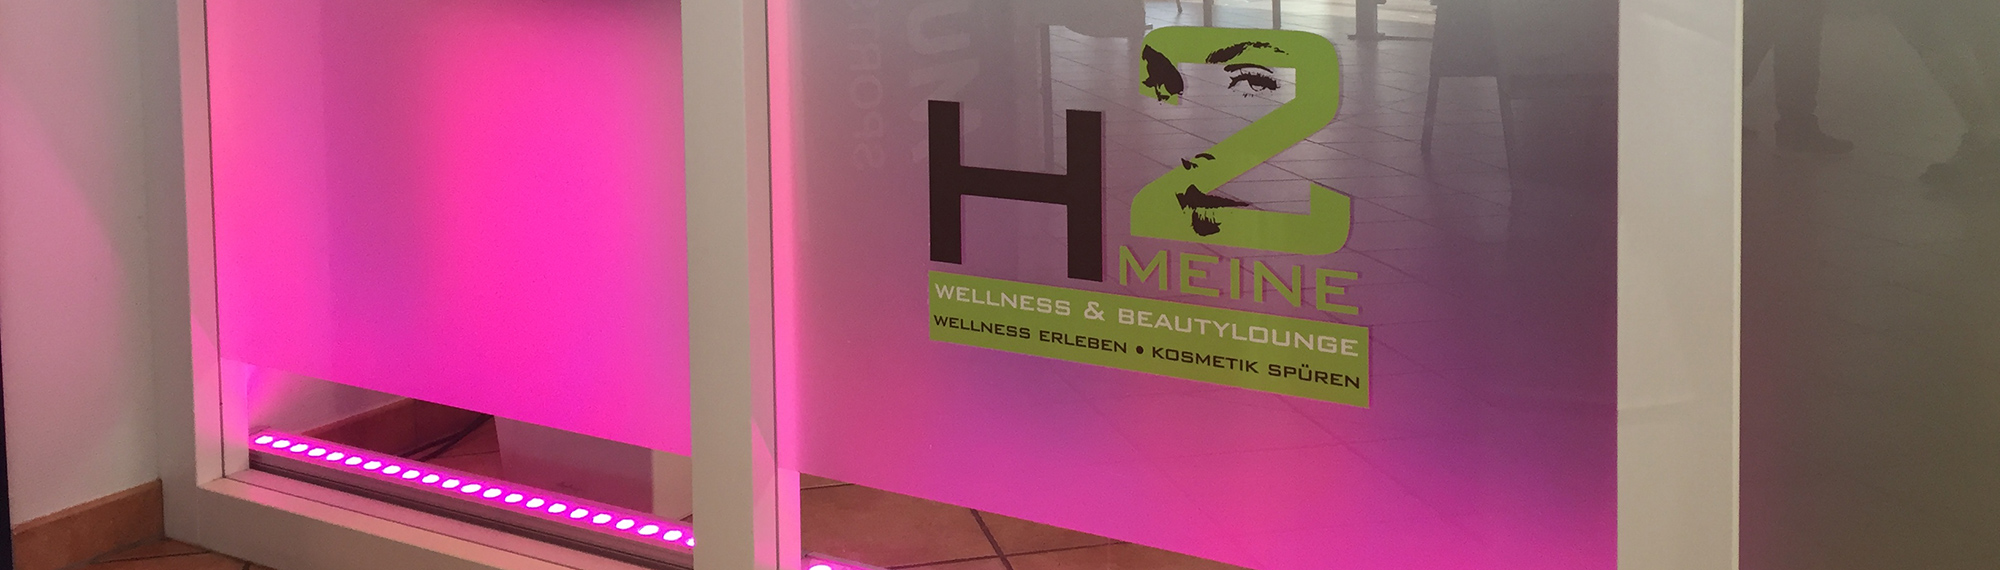 Wellness und Beauty in Goslar